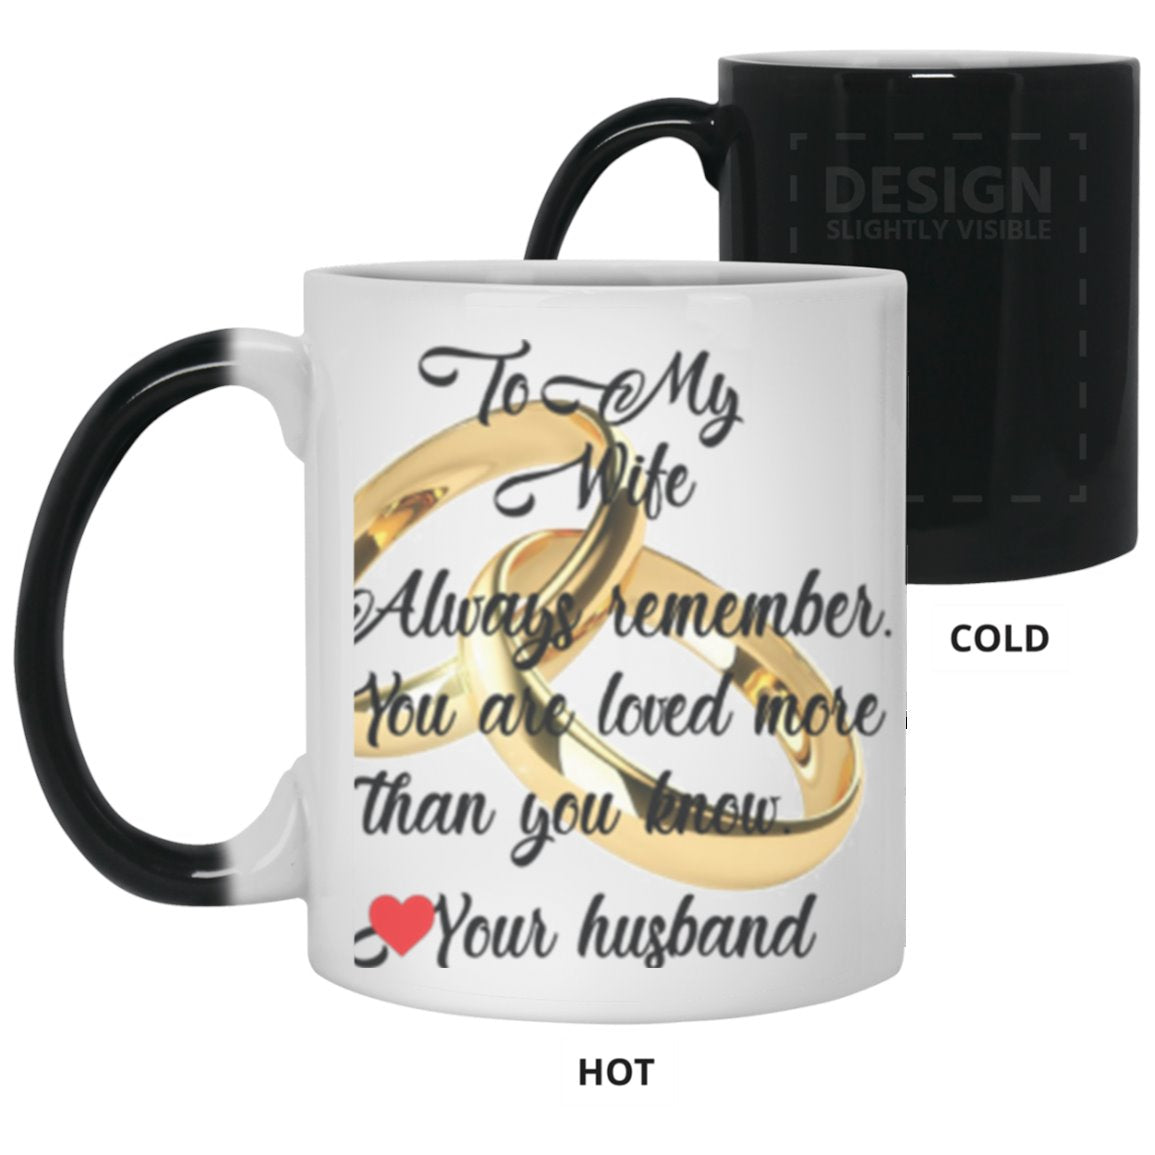 TO MY WIFE ALWAYS REMEMBER From HUSBAND * Color Changing Mug 11 oz  CC